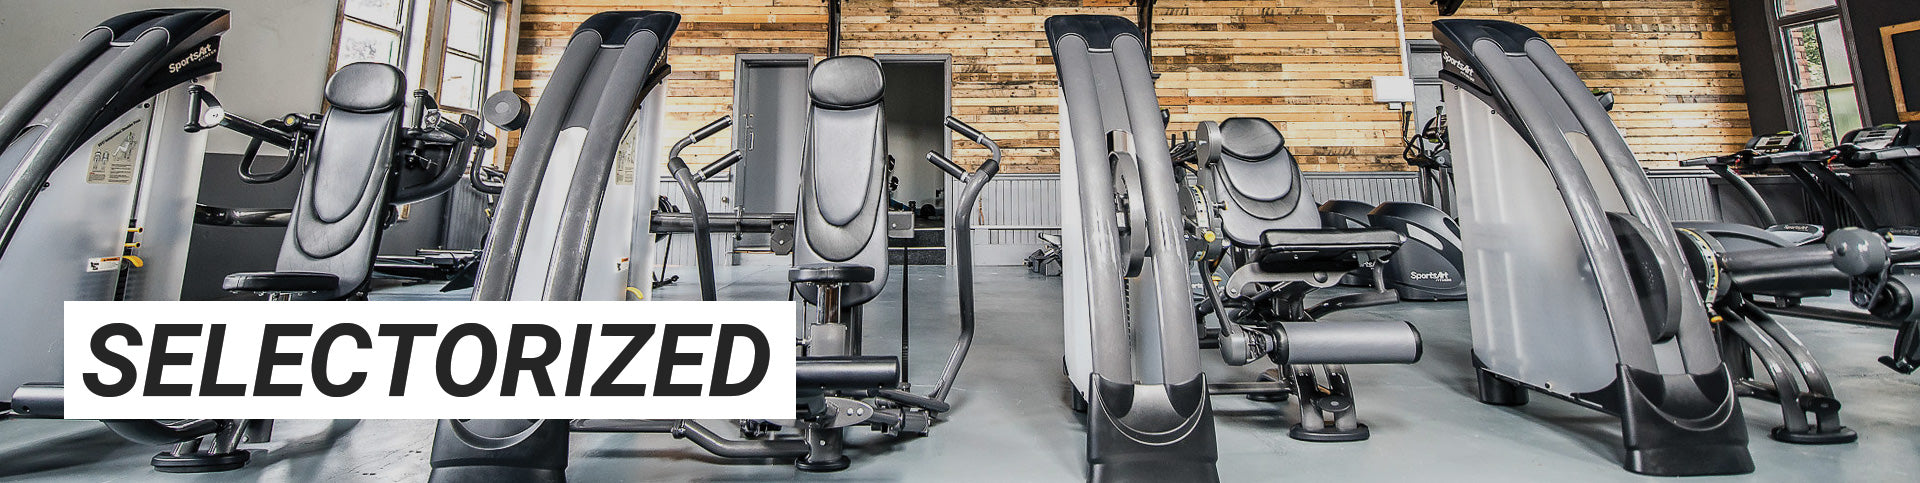 selectorized strength exercise equipment